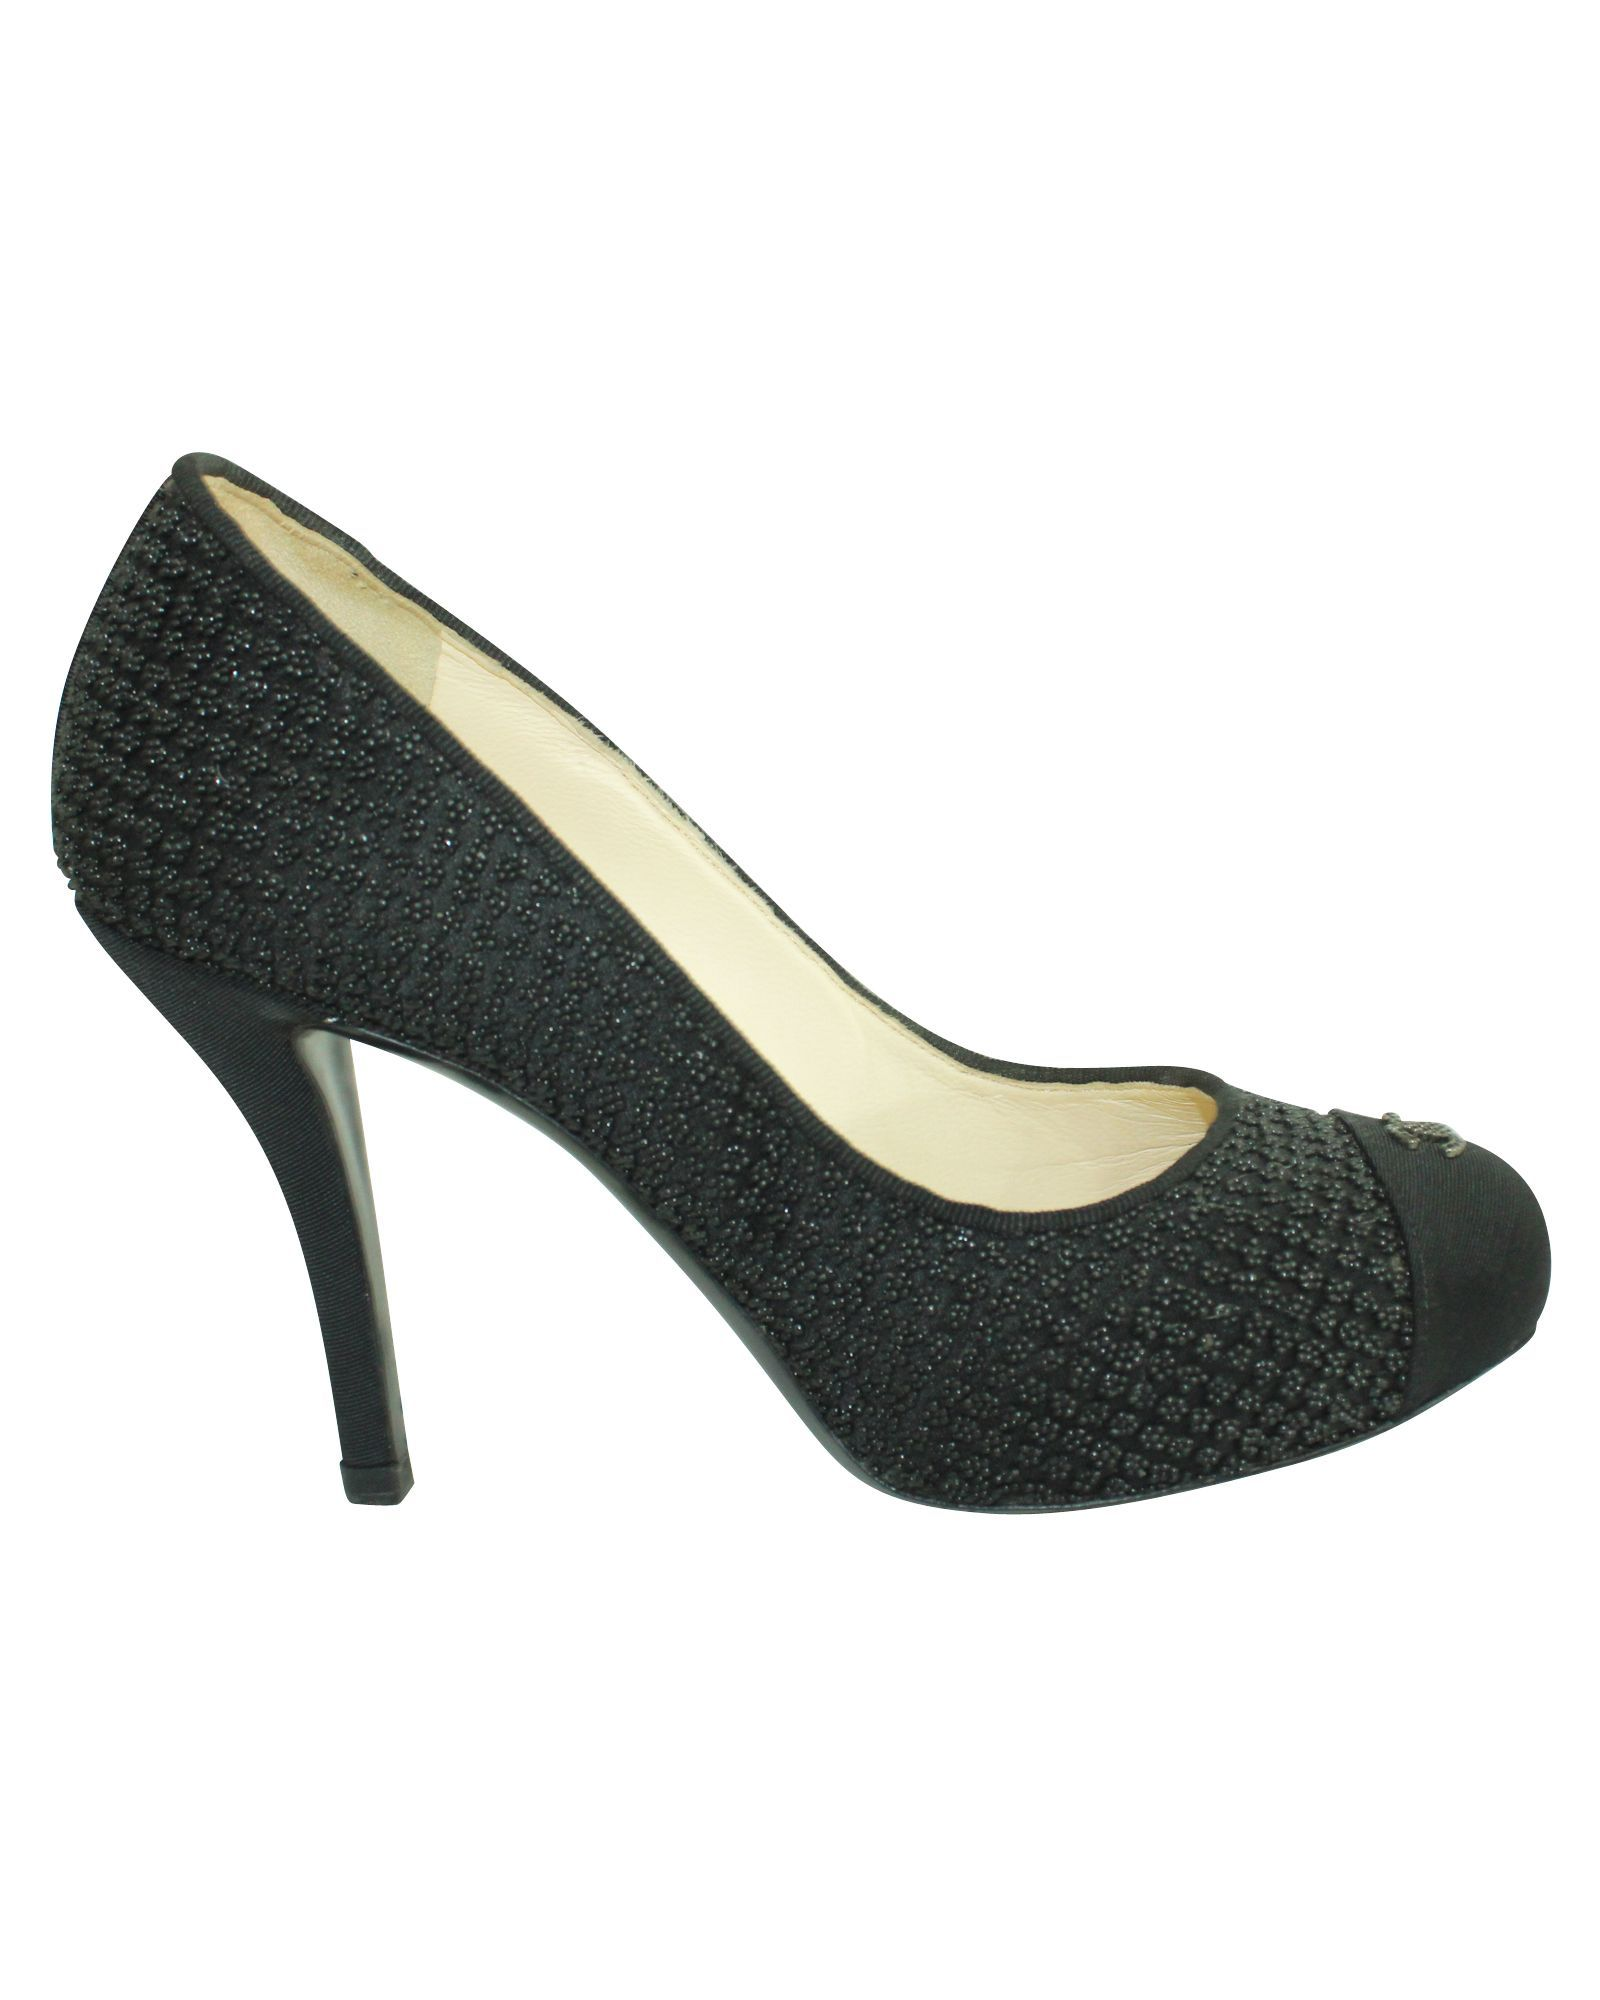 Chanel Round Toe Cc Black Heels -Pre Owned Condition Very Good